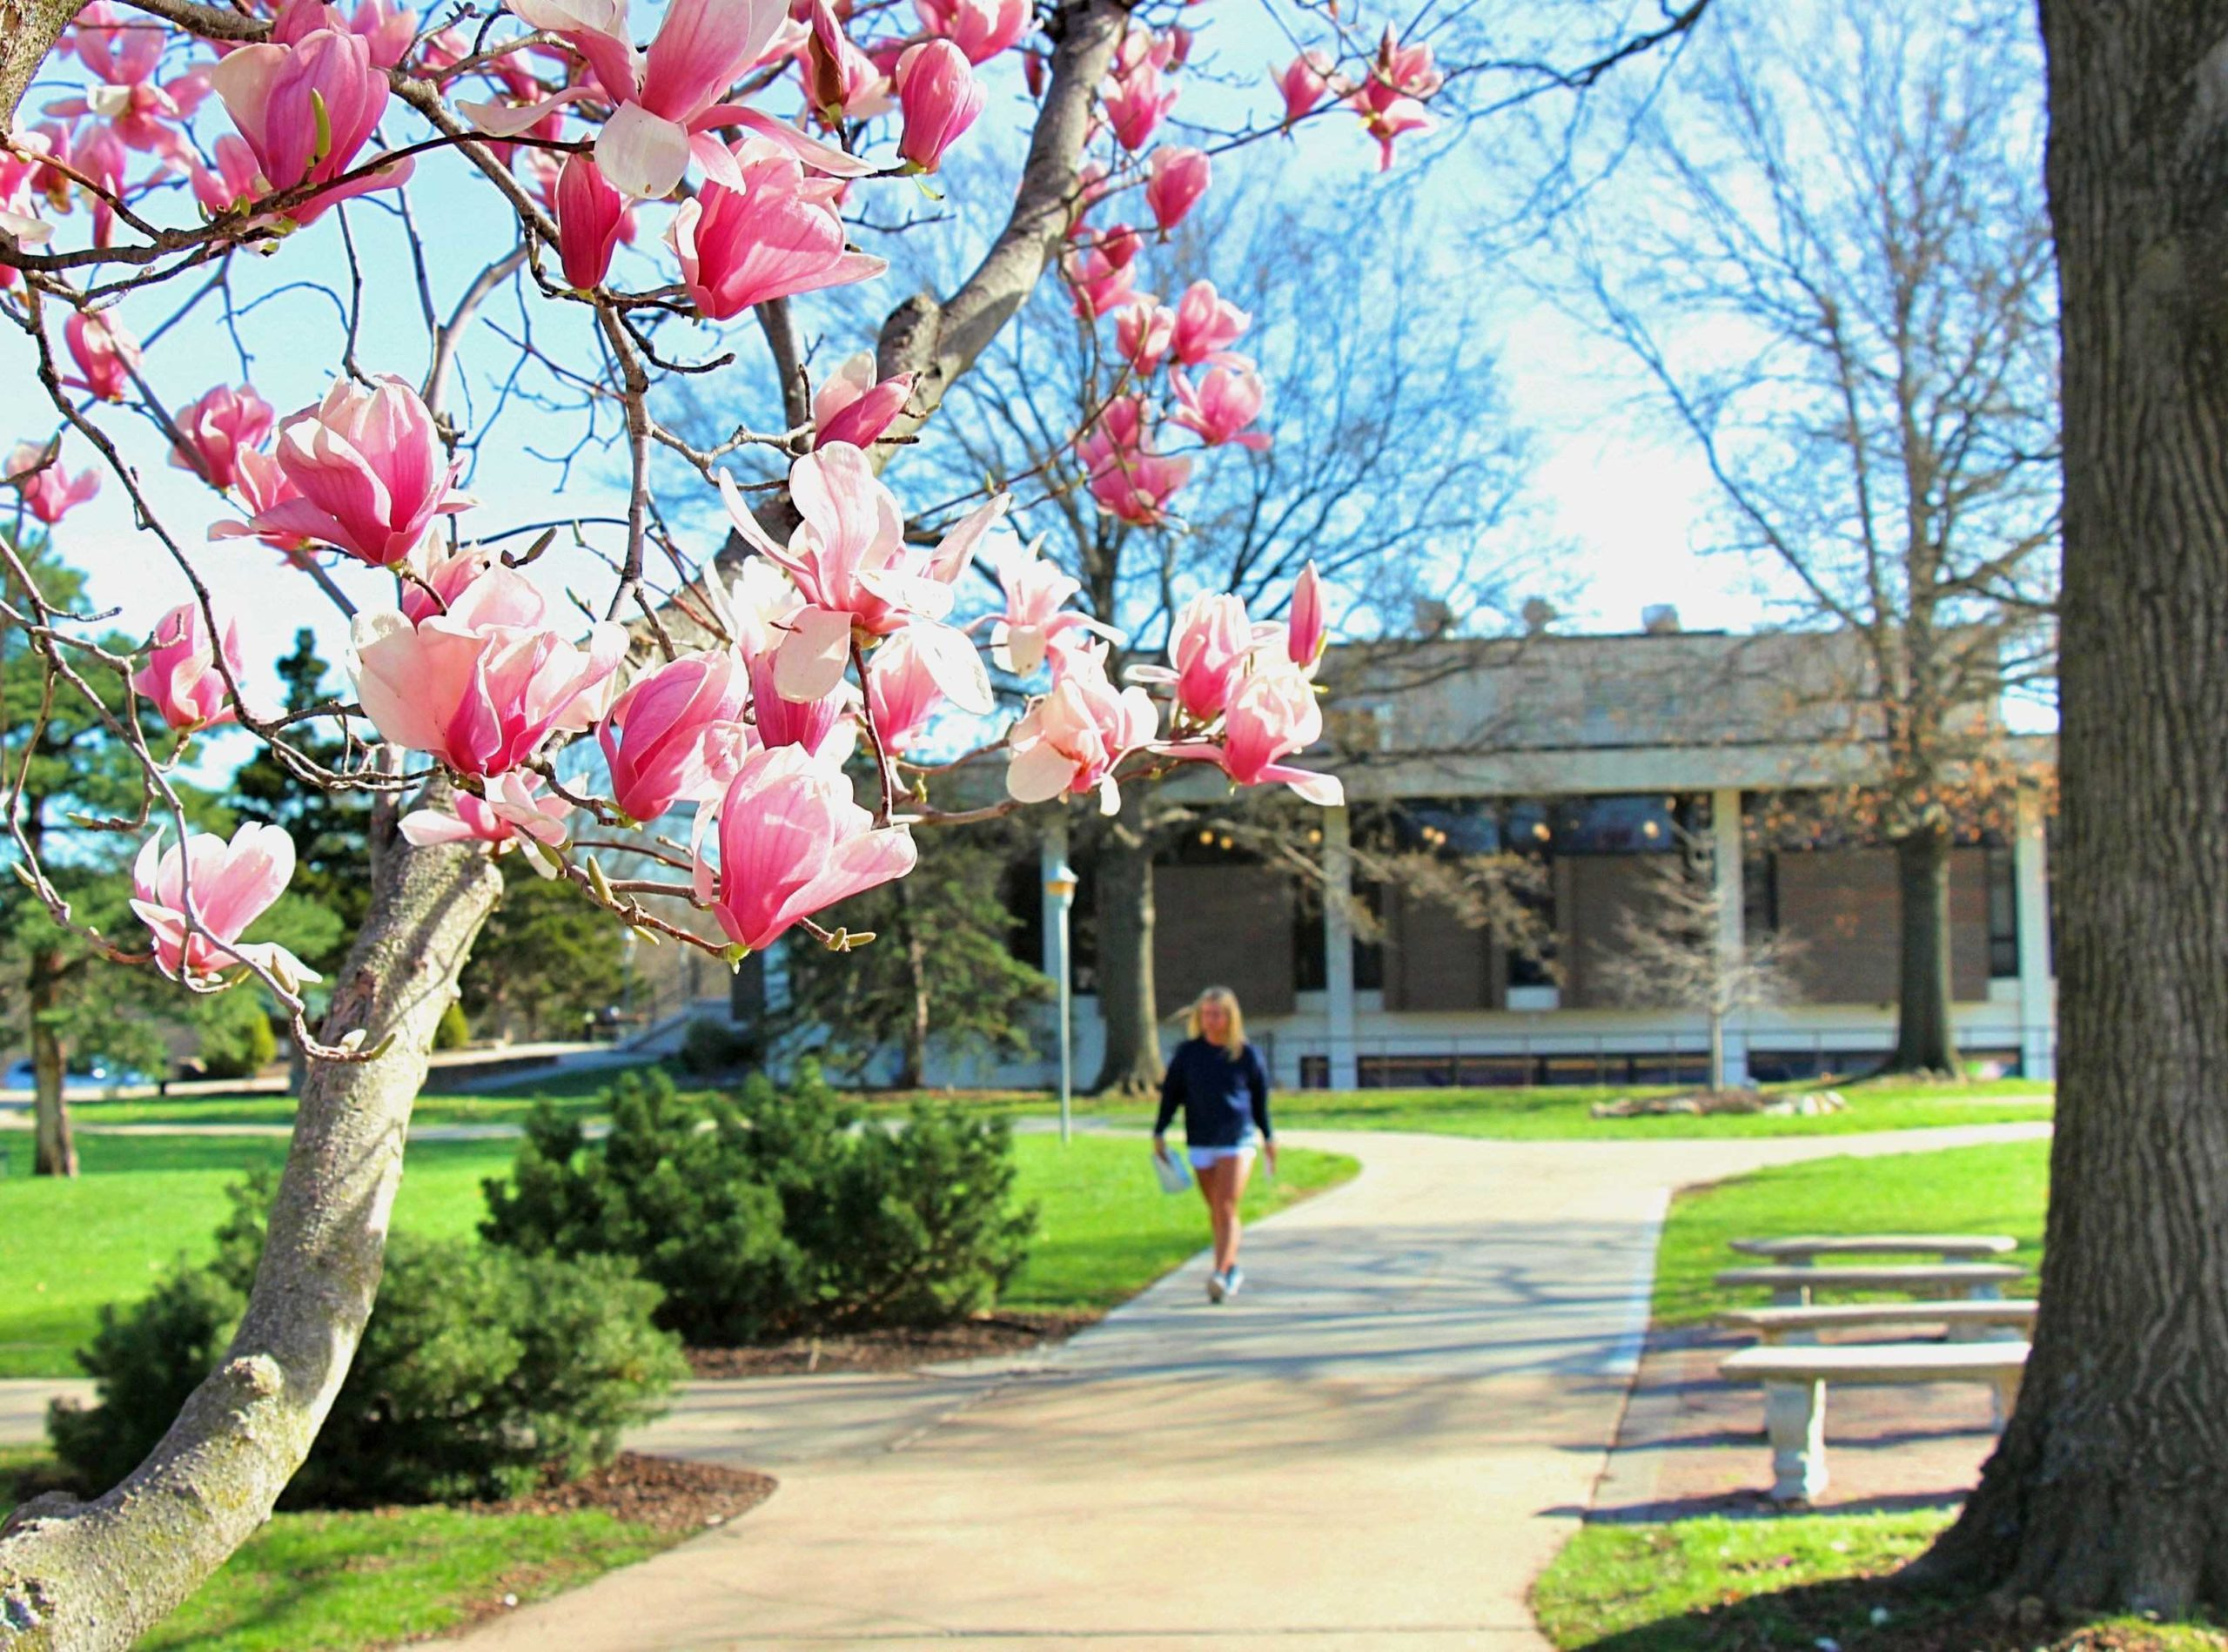 Student walking on campus framed by magnolia blooms